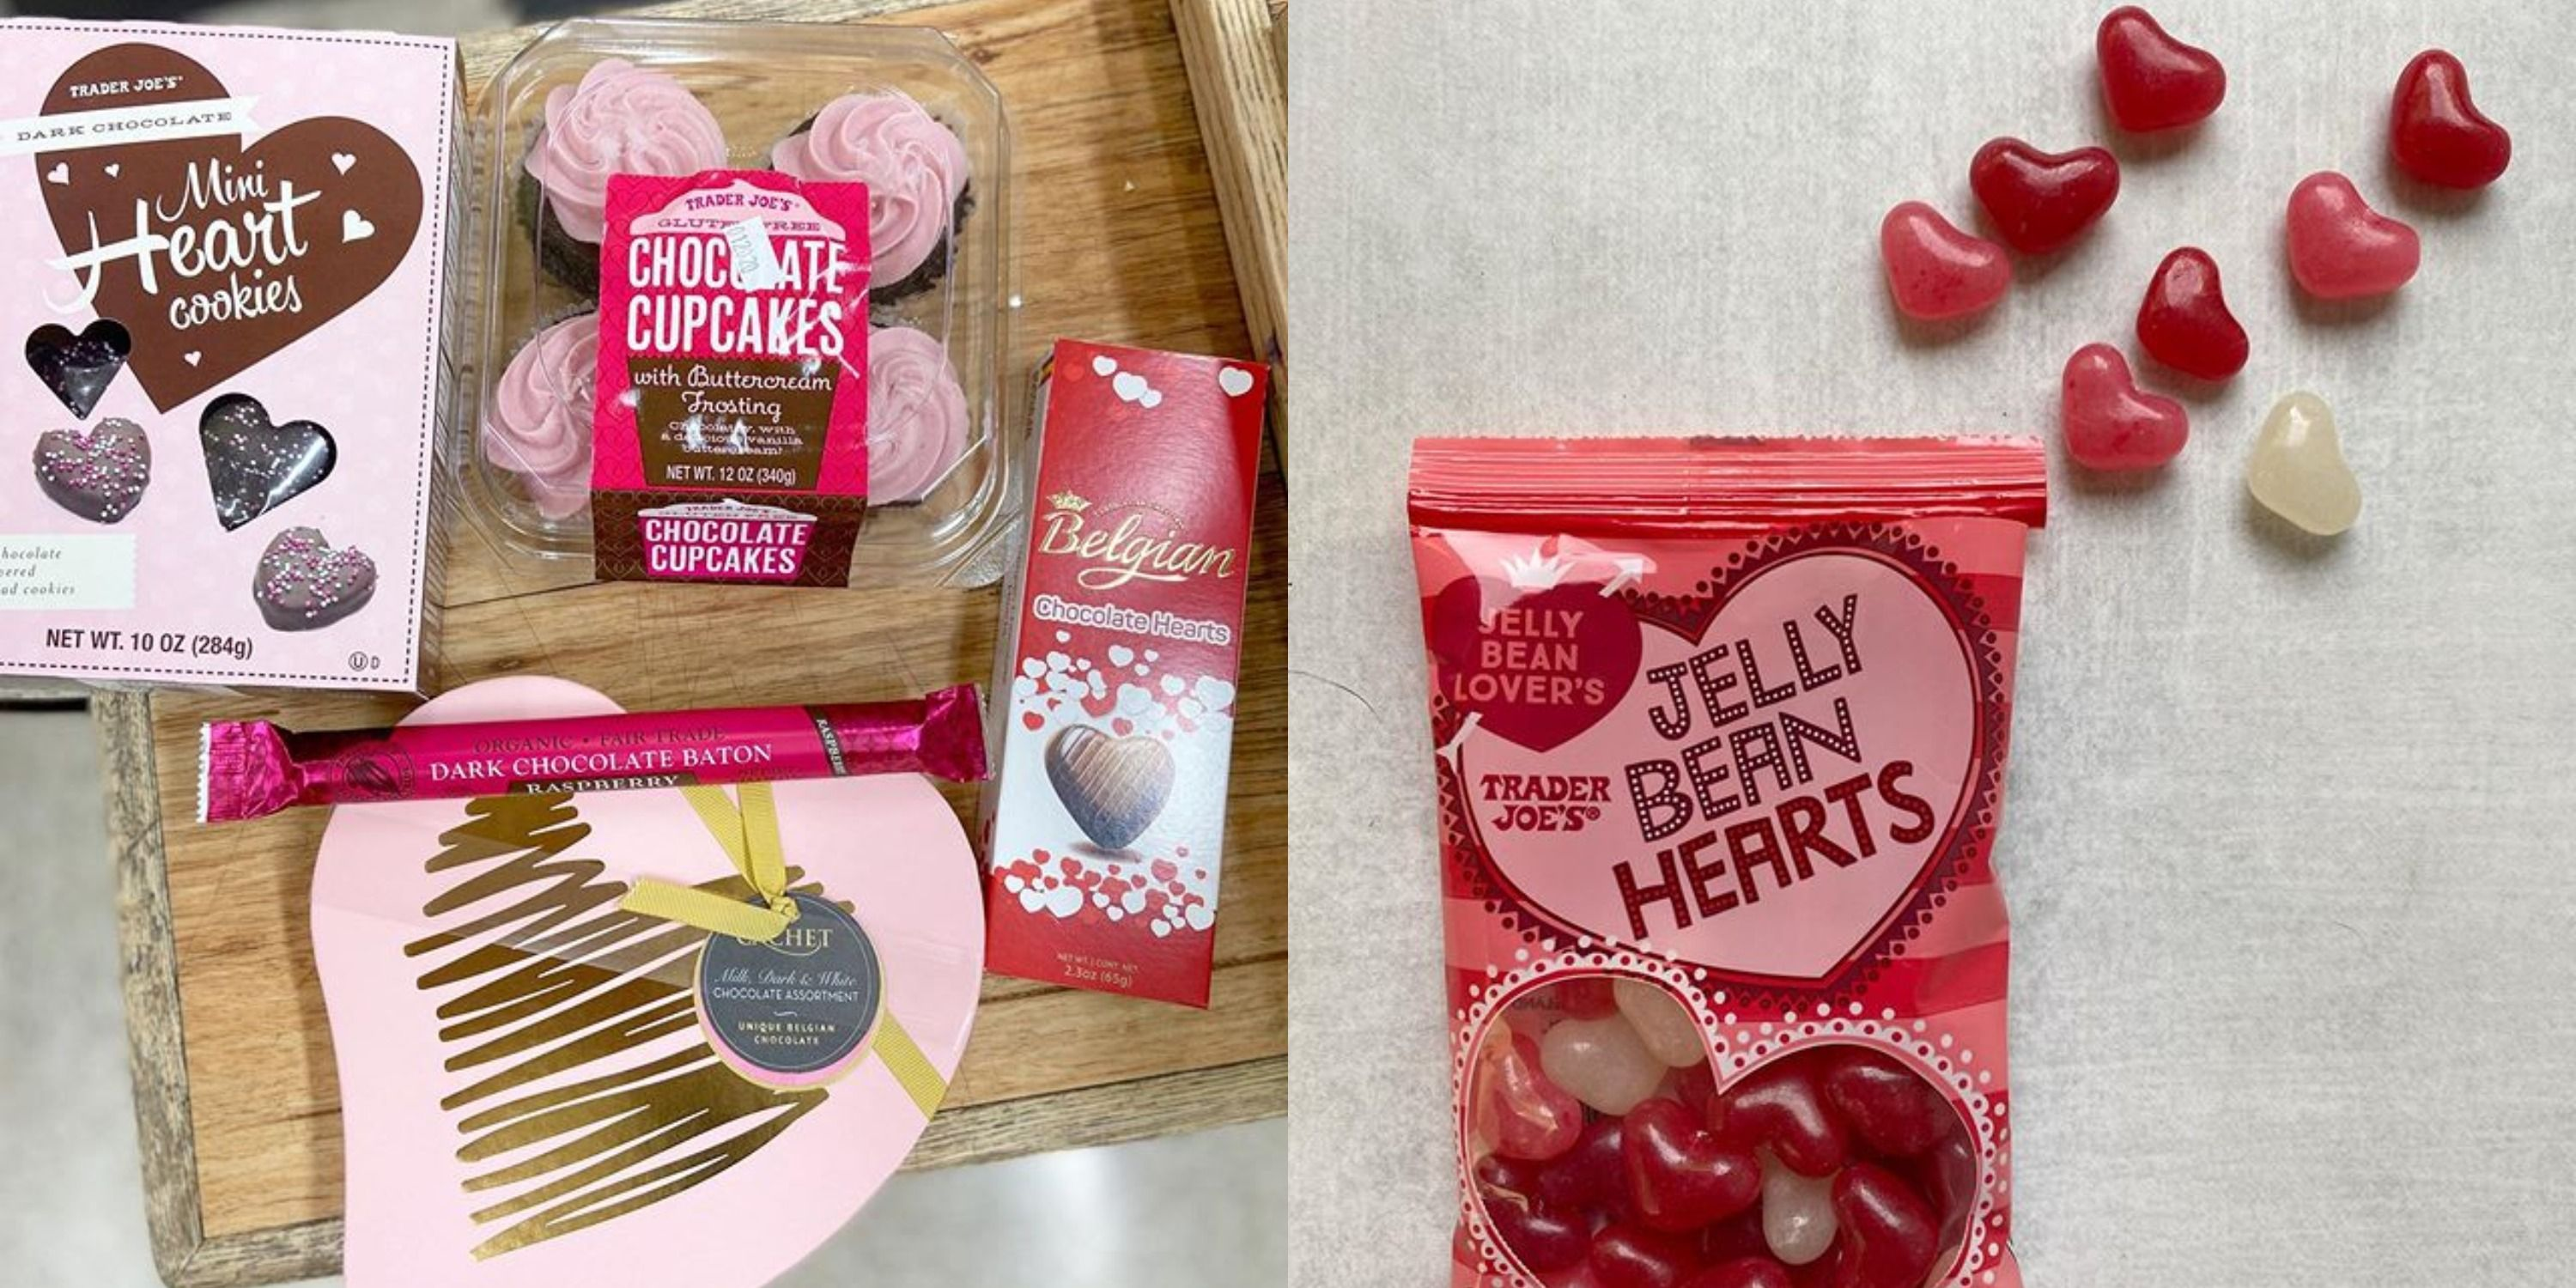 Trader Joes' Valentine's Day Line Is Finally Here And It's A Heart-Shaped Paradise